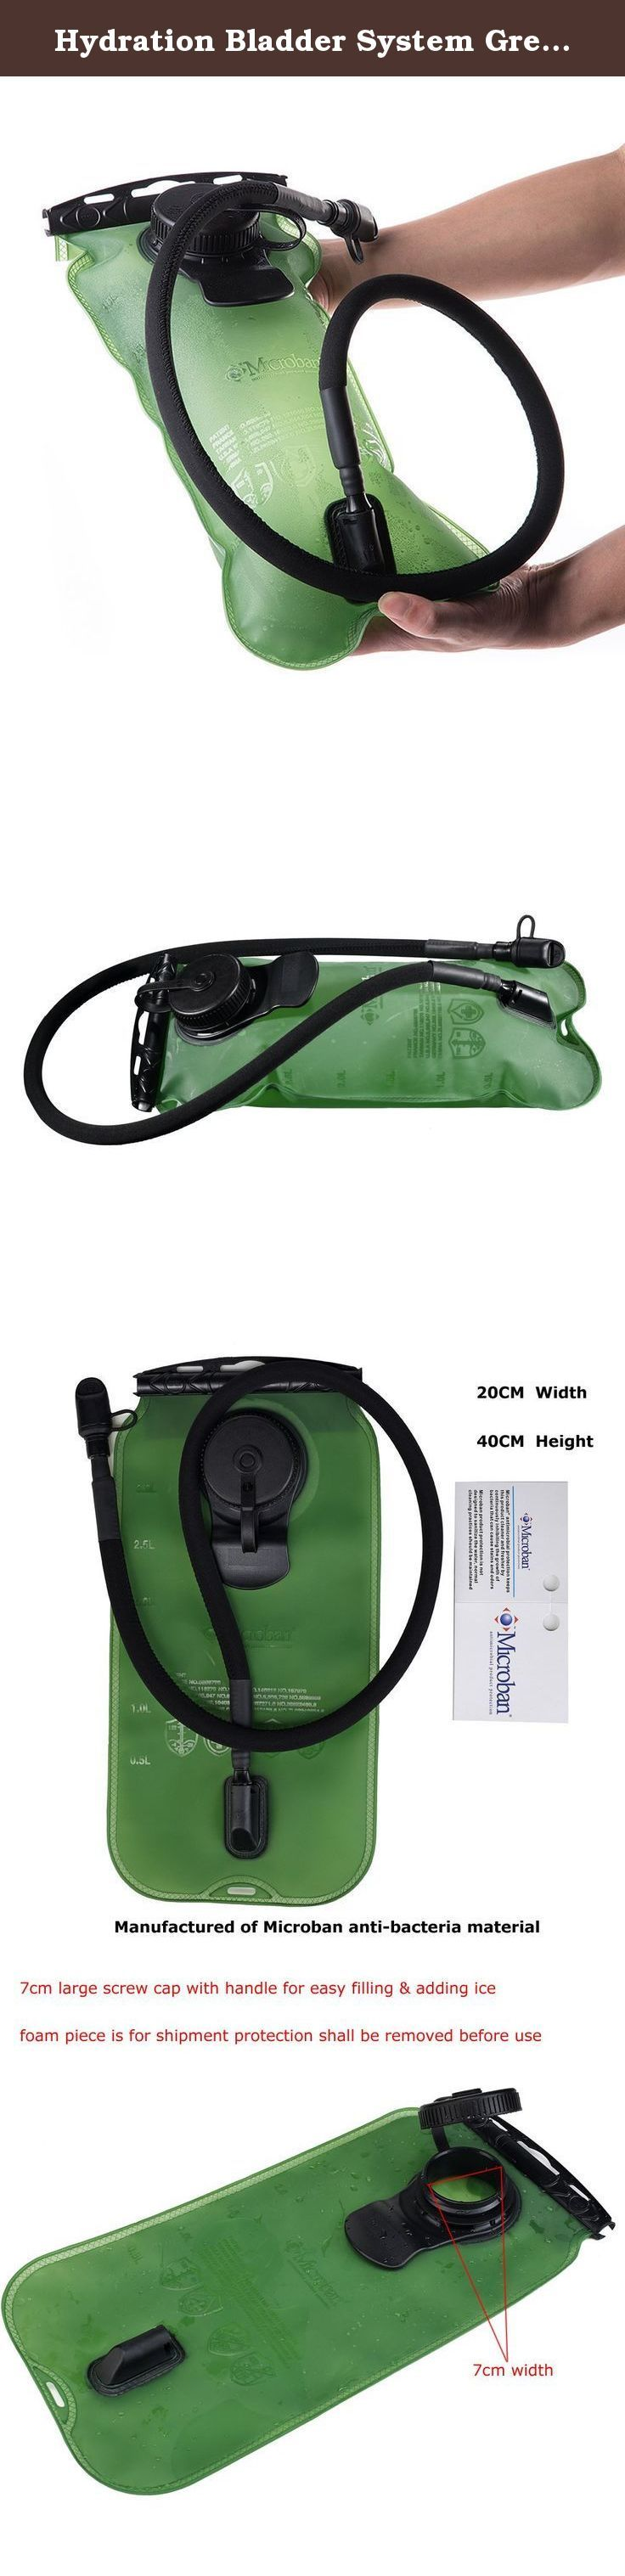 Hydration Bladder System Green 100oz/3litres, Large Opening, Easy to Clean and Full Water Reservoir, BPA Free Tasteless Water Bag Packs, Most Durable Health for Cycling, Climbing, Hiking. Top Hydration Pack Bladder Best For Health SGS Verification Military Class Quality FDA Approved BPA Free Water Reservoir Wide-mouth opening with Slidelock; closure is easy to refill and locks securely Quick-release hose and shutoff valve make drinking and refilling easyEasy to fill and insert into the…